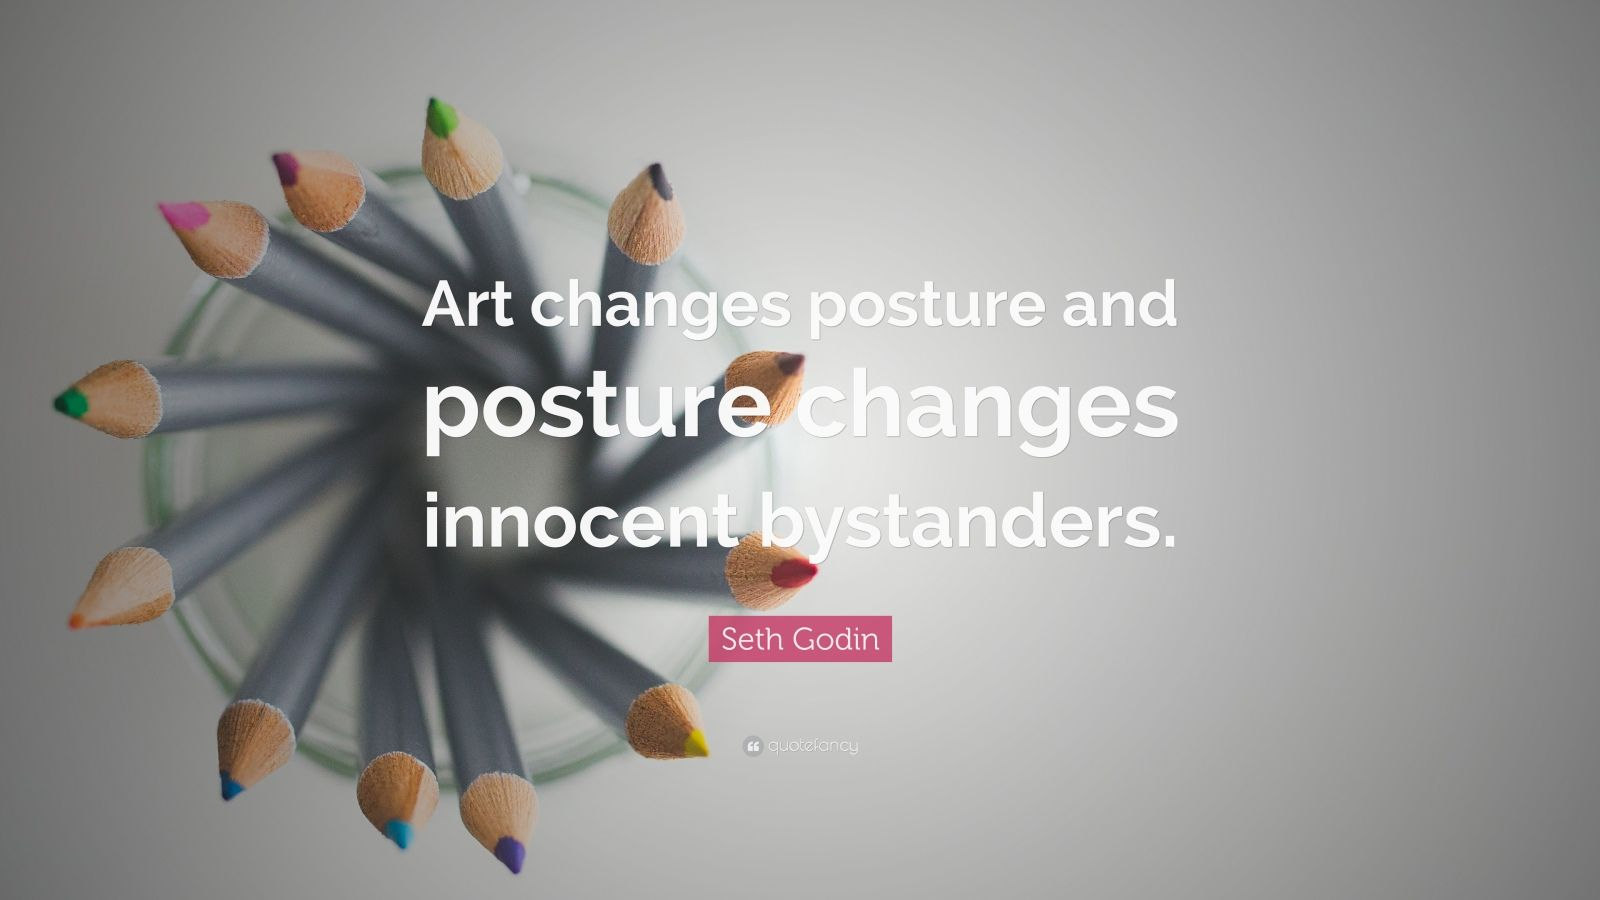 """Seth Godin Quote: """"Art changes posture and posture changes innocent bystanders."""""""